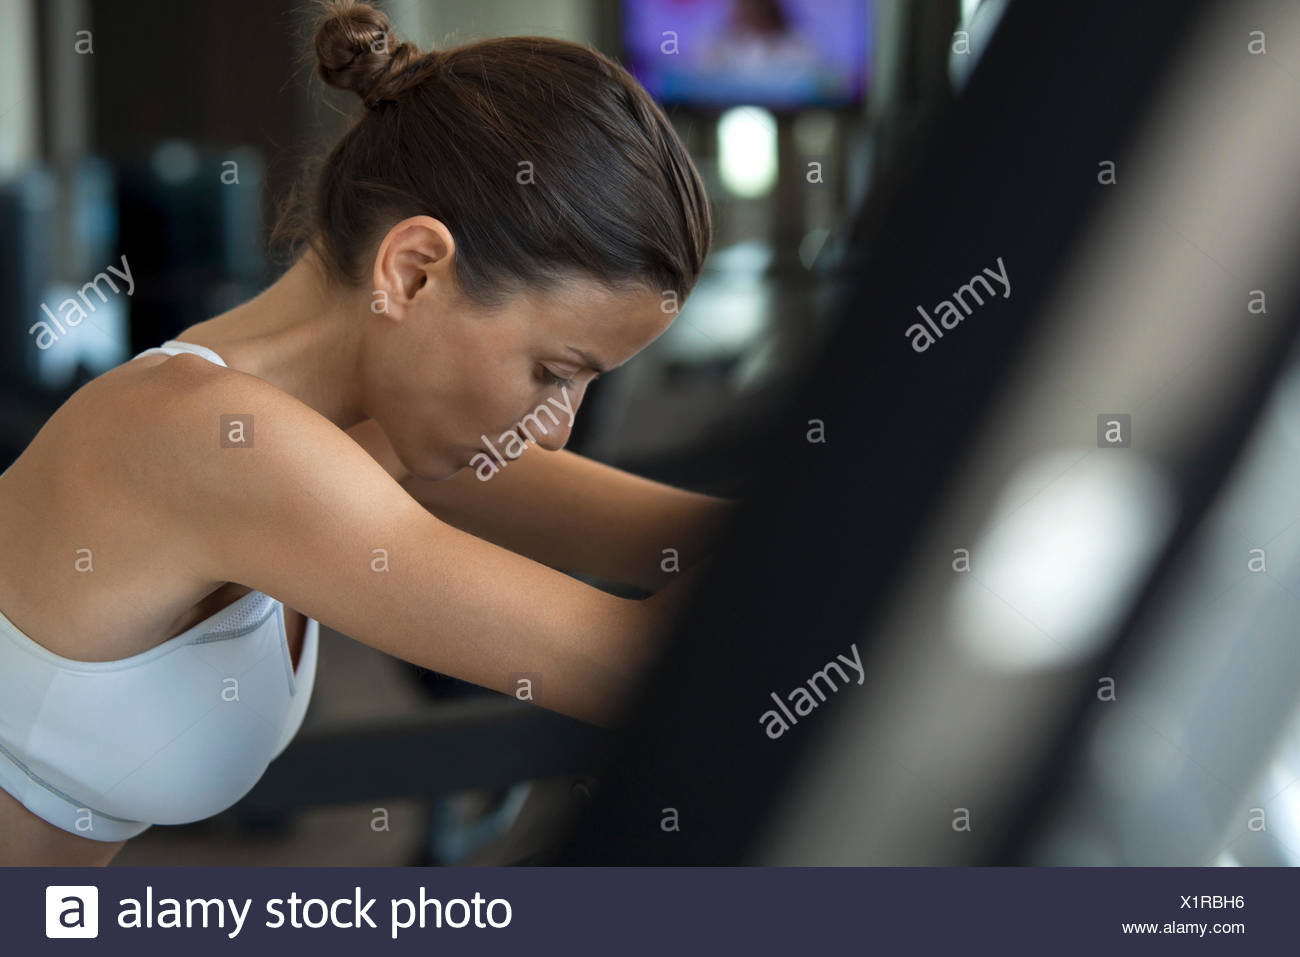 Woman in health club Photo Stock